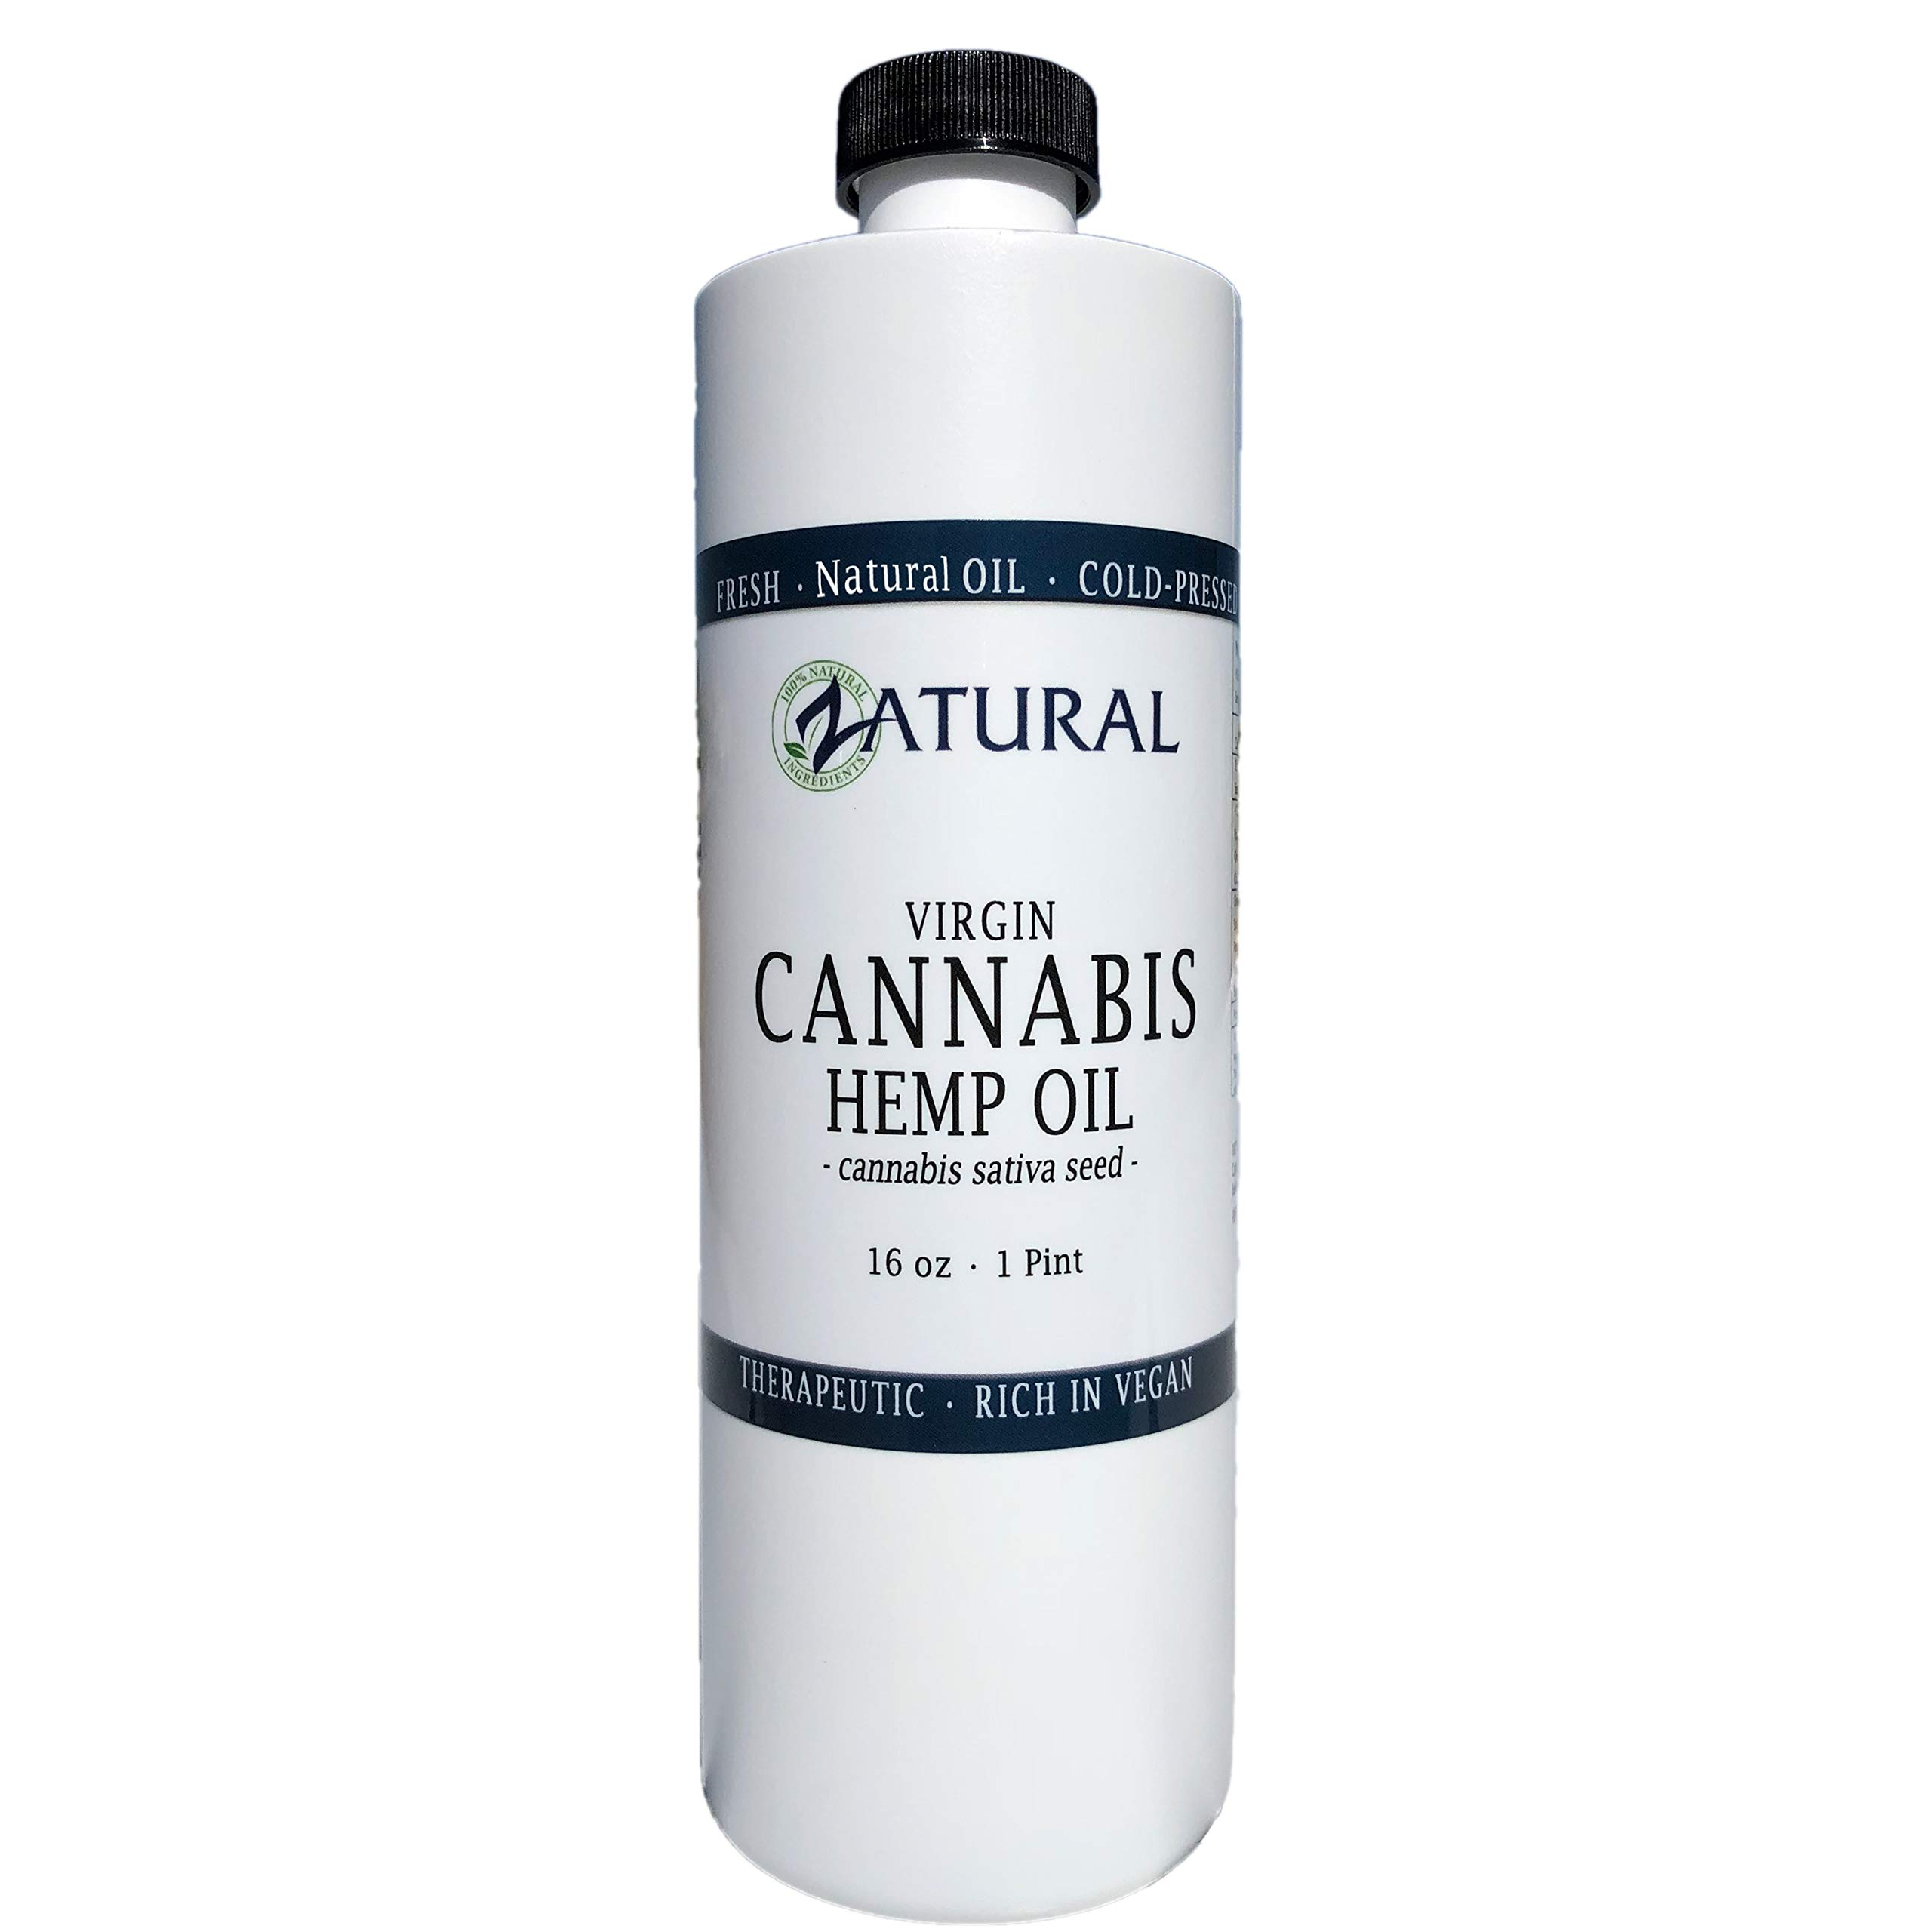 Hemp Oil Anti-Inflammatory_Pain Relief_100% Pure_Cold Pressed_High Vegan Omegas 3 & 6_No Fillers or Additives, Therapeutic Grade (16 Ounce) (16 Ounce) (16 Ounce)